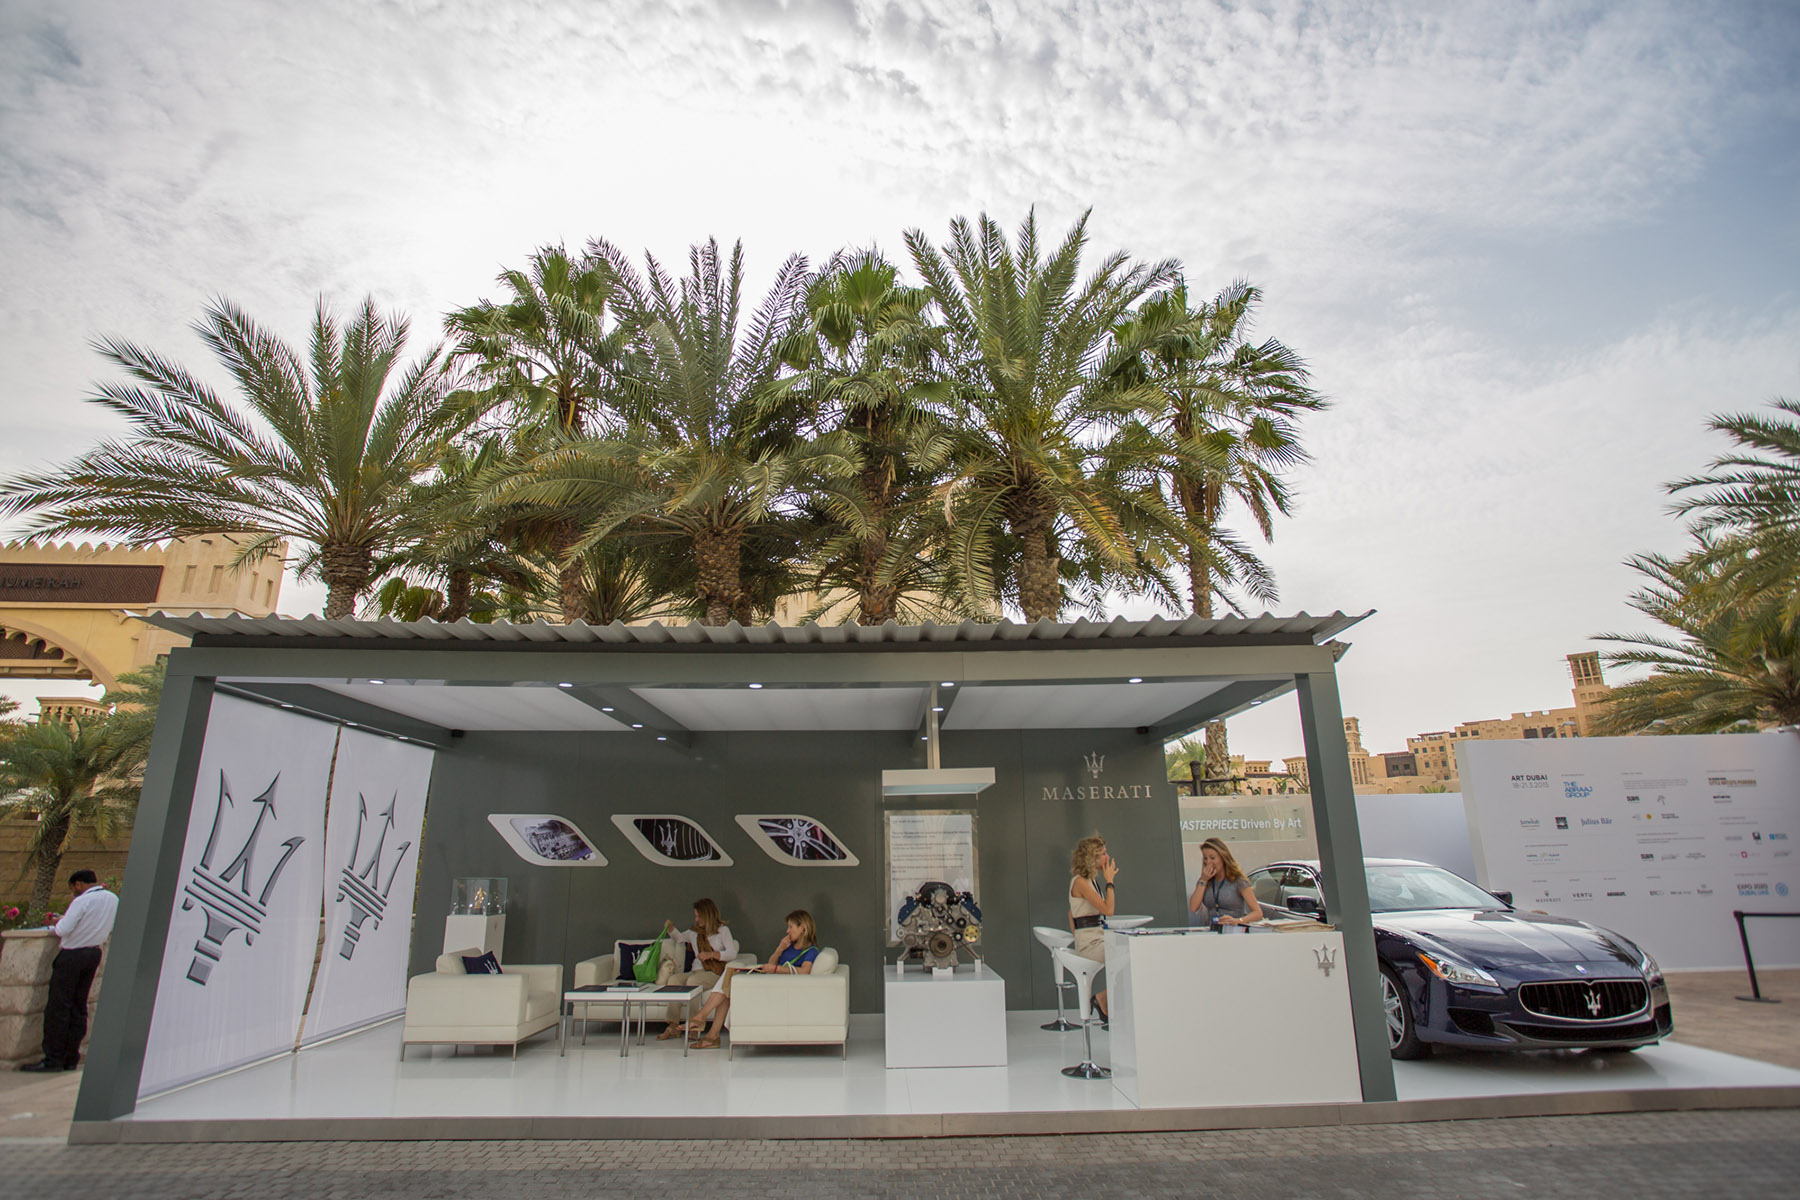 Maserati stand at Art Dubai by Loesje Kessels Fashion Photographer